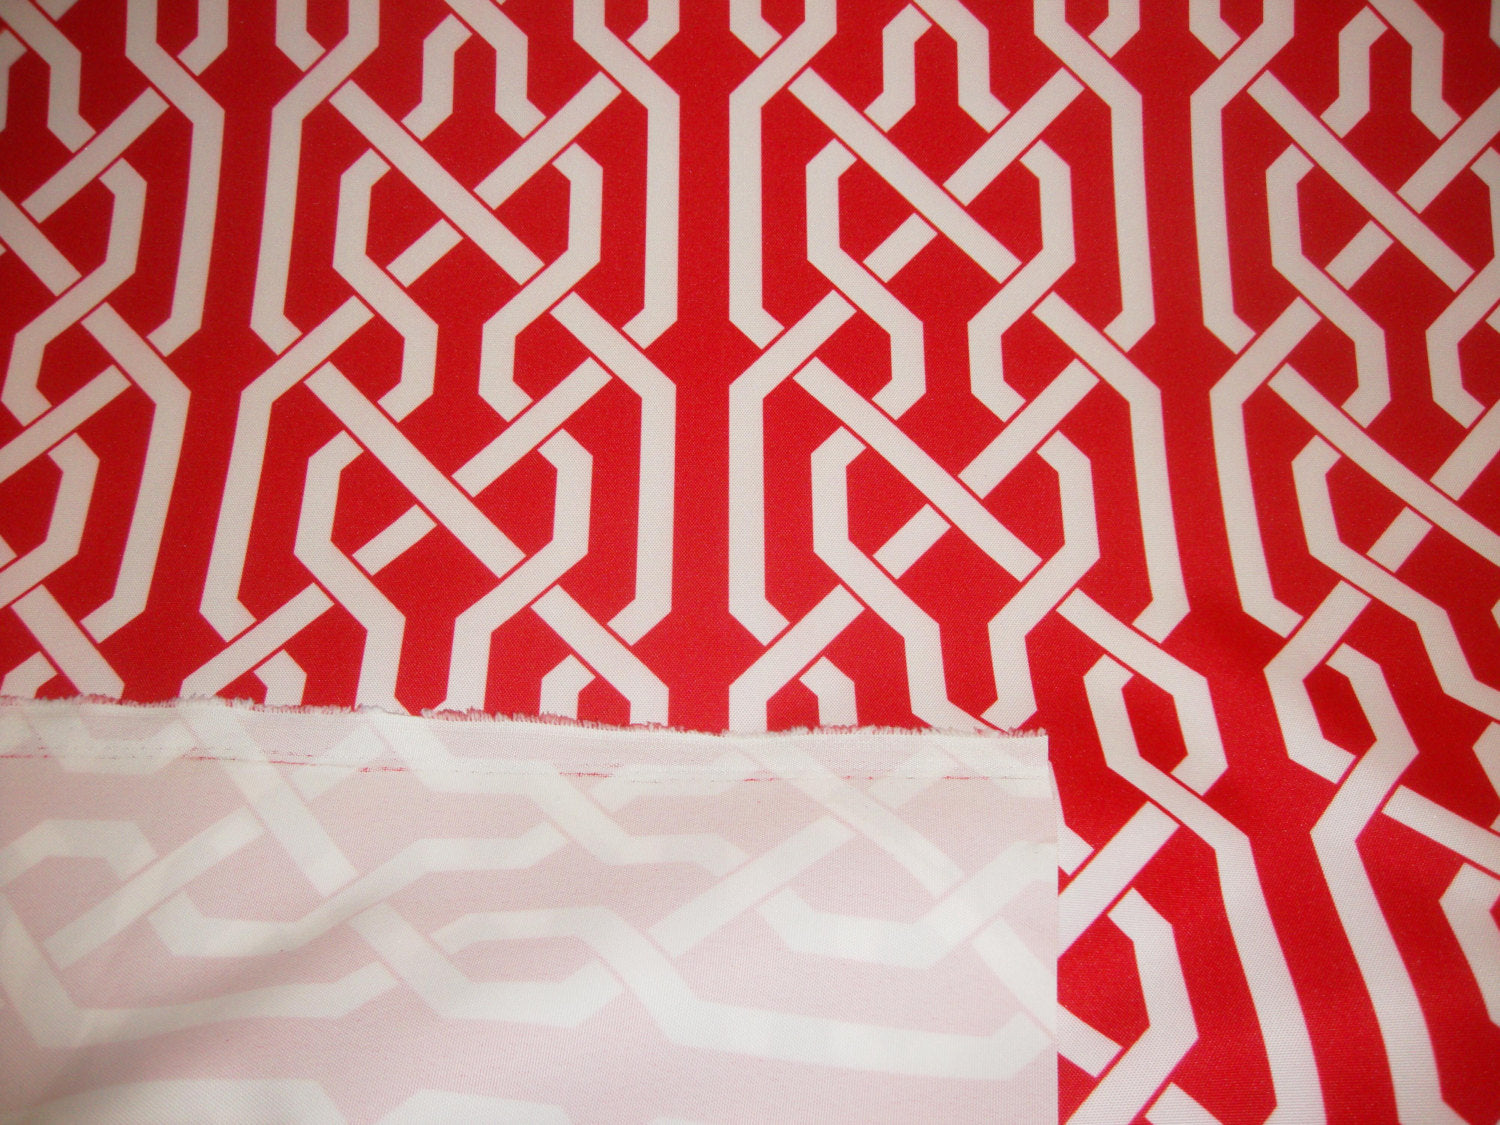 "Red White Roman Style 600 Denier Waterproof UV Protection Polyester Canvas 60"" Wide 